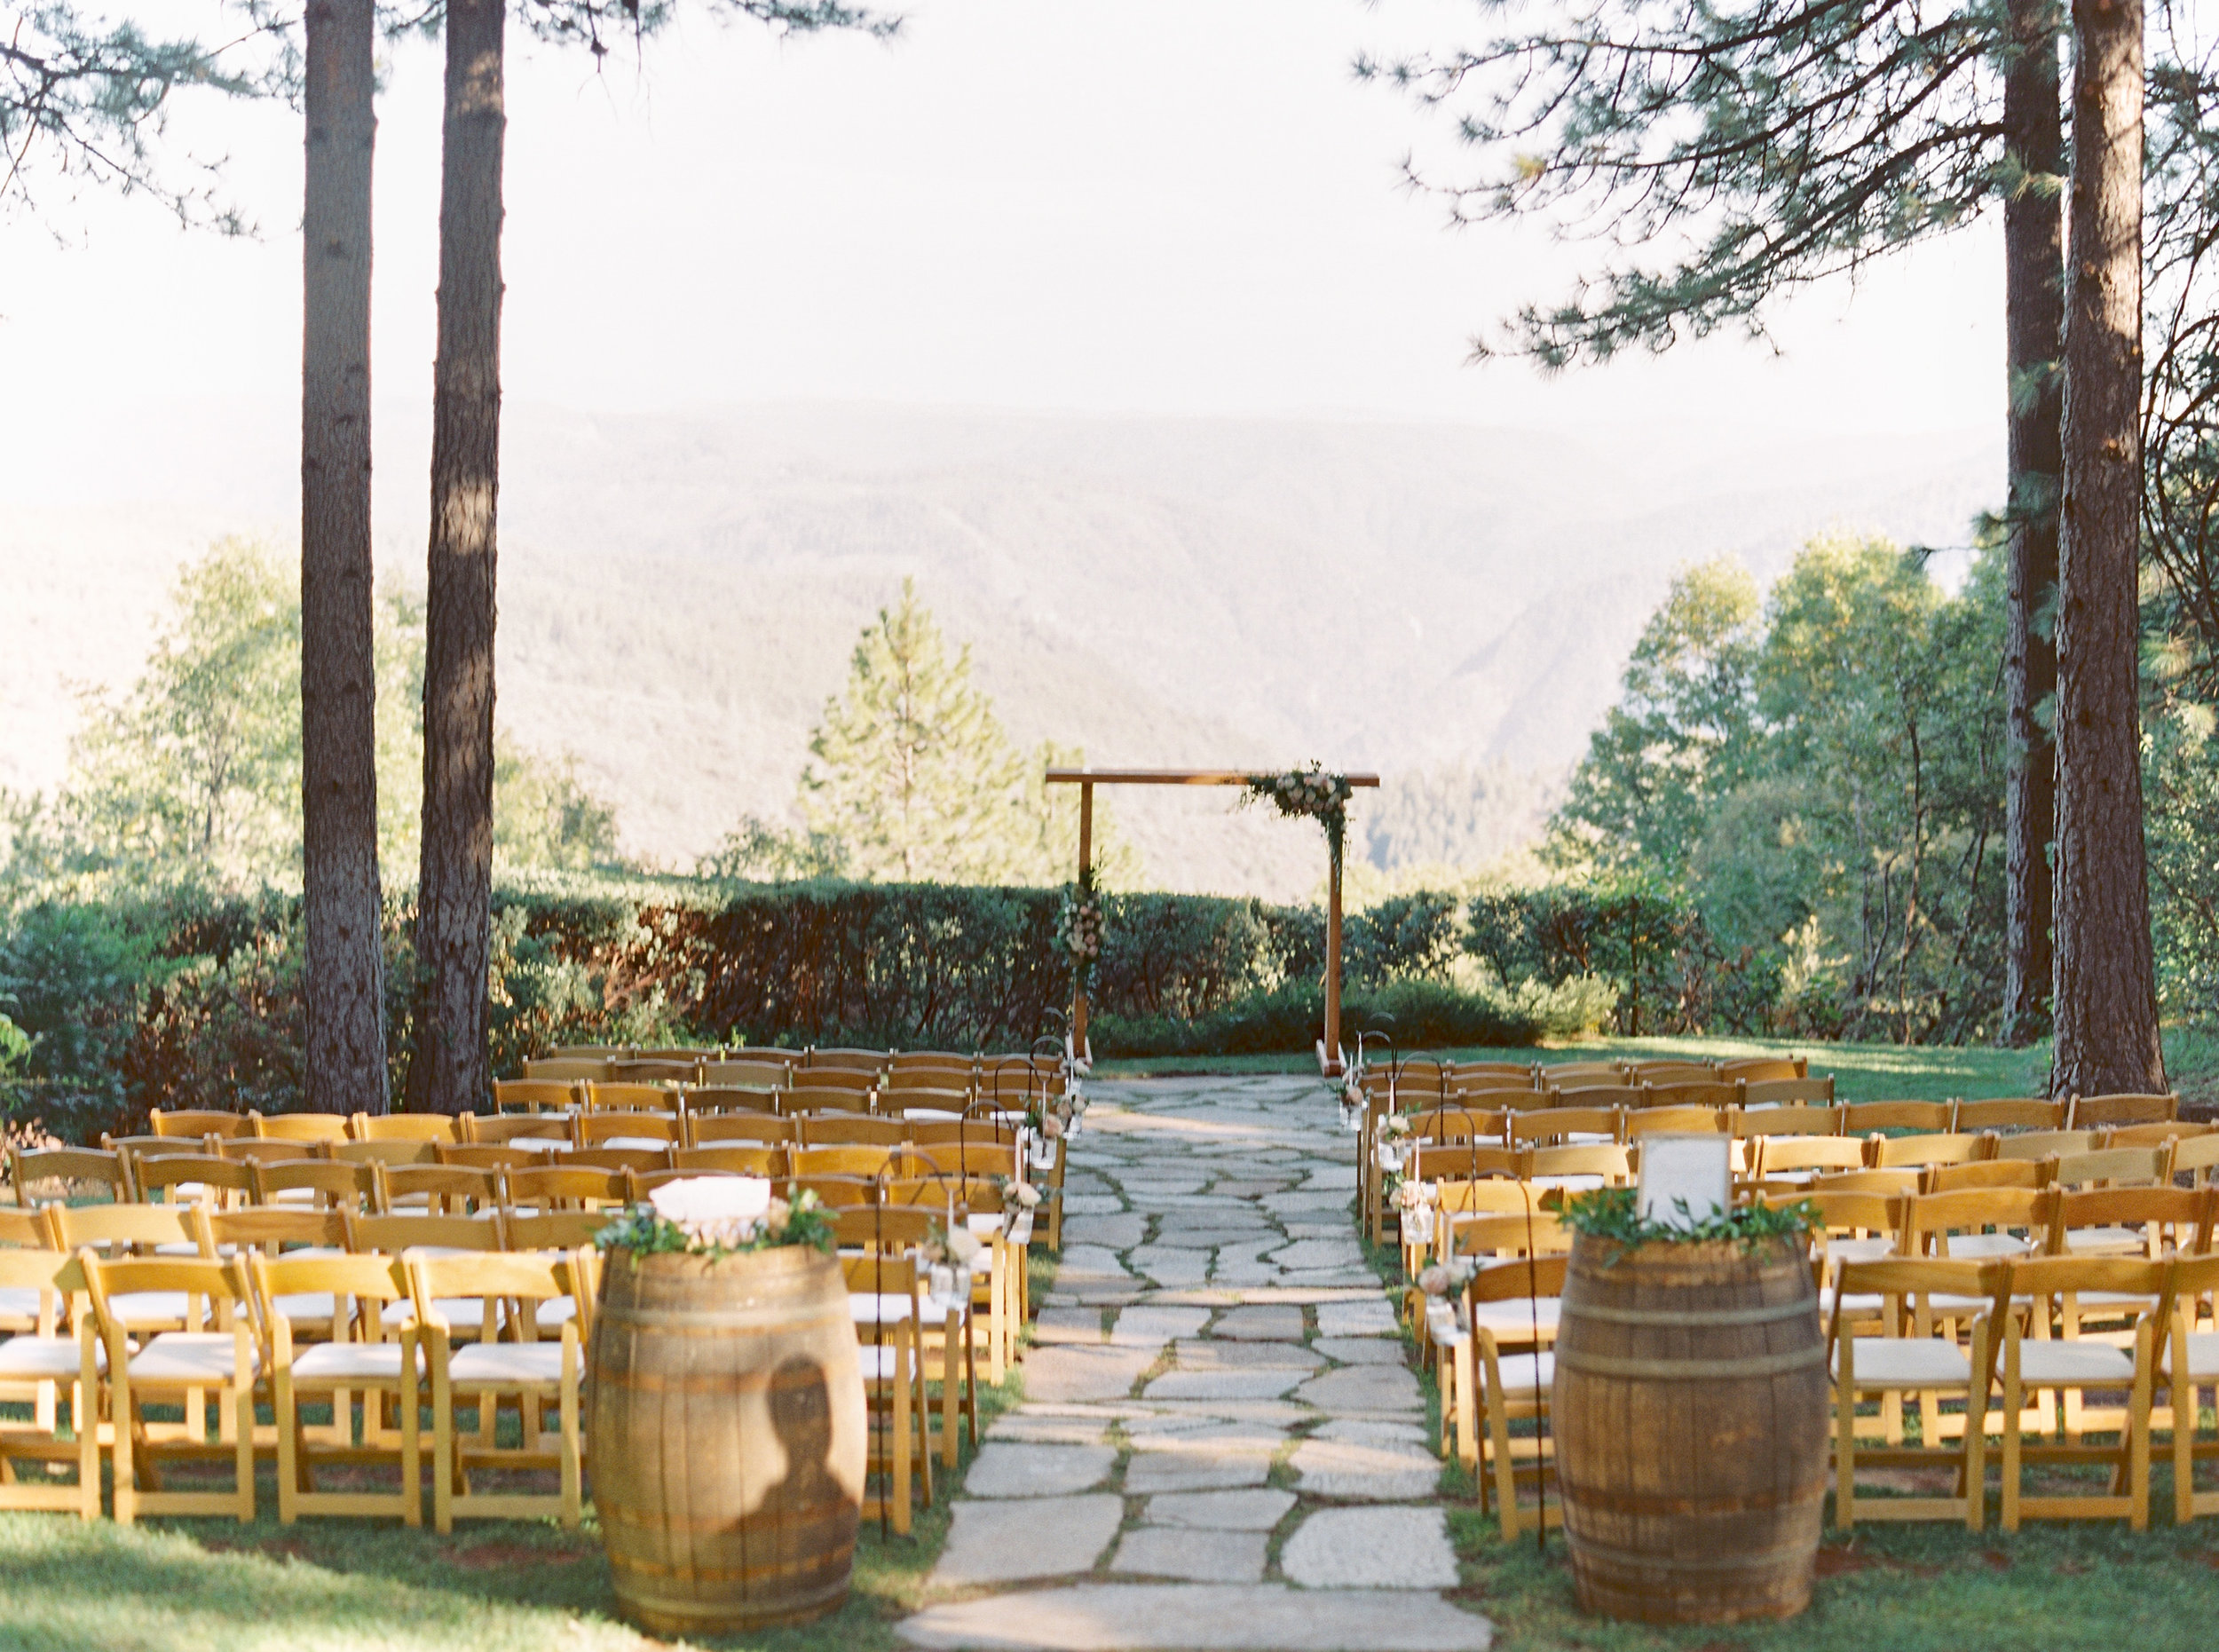 Forest-house-lodge-wedding-foresthill-california-25.jpg